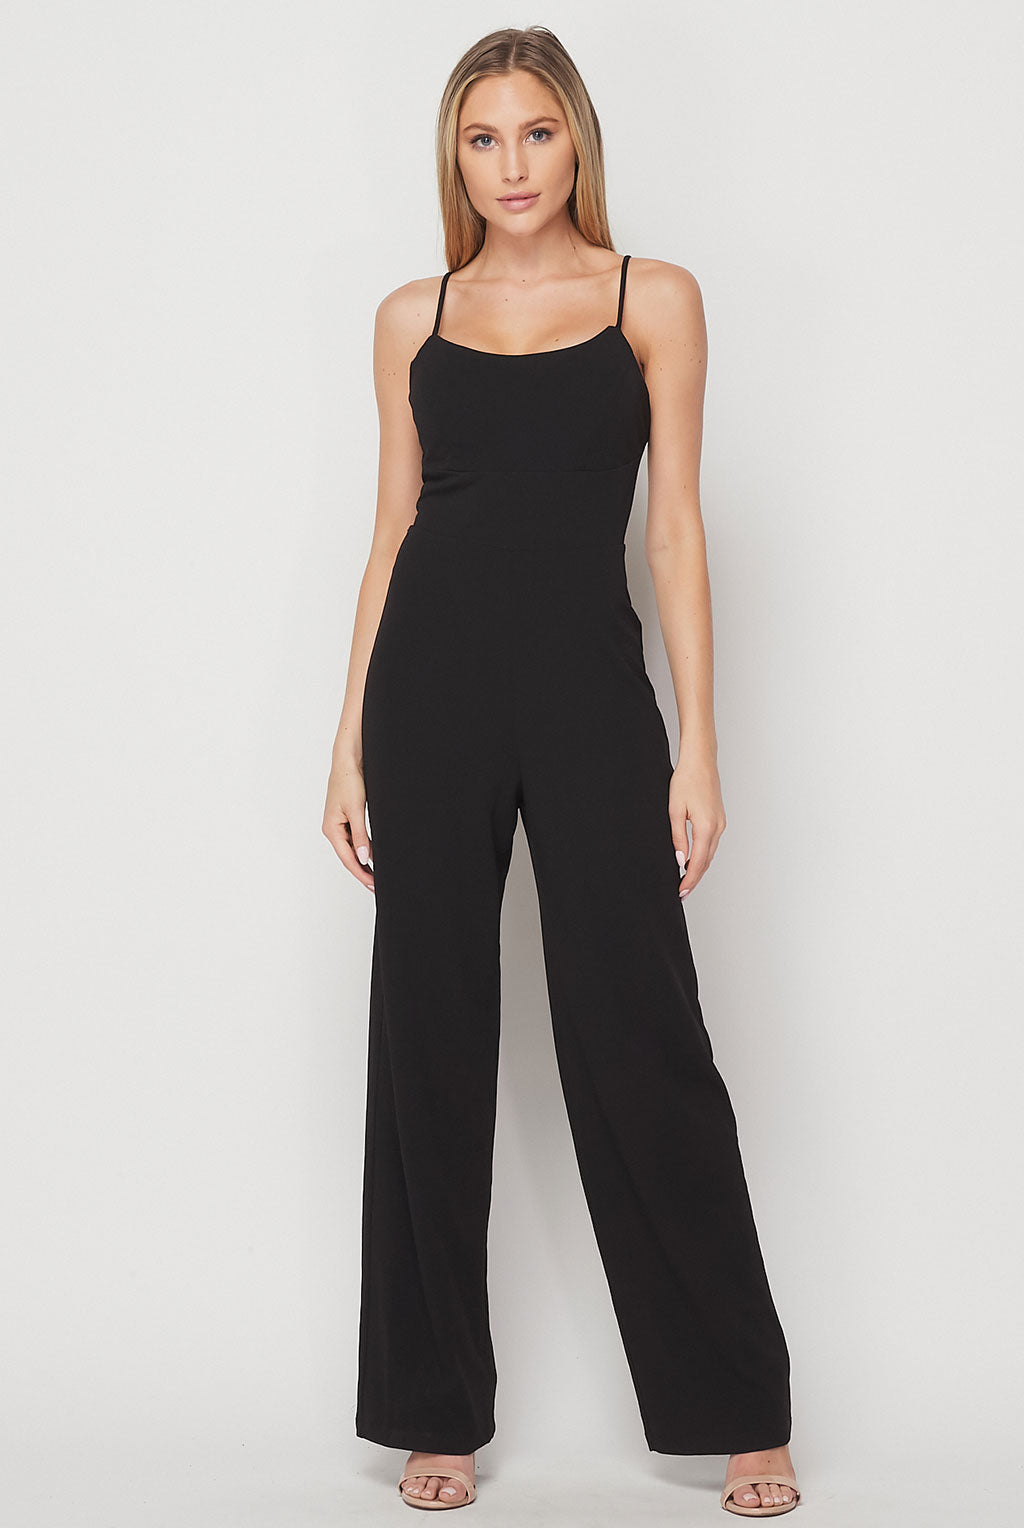 Teeze Me | Spaghetti Strap Strappy Back Tie Jumpsuit | Black